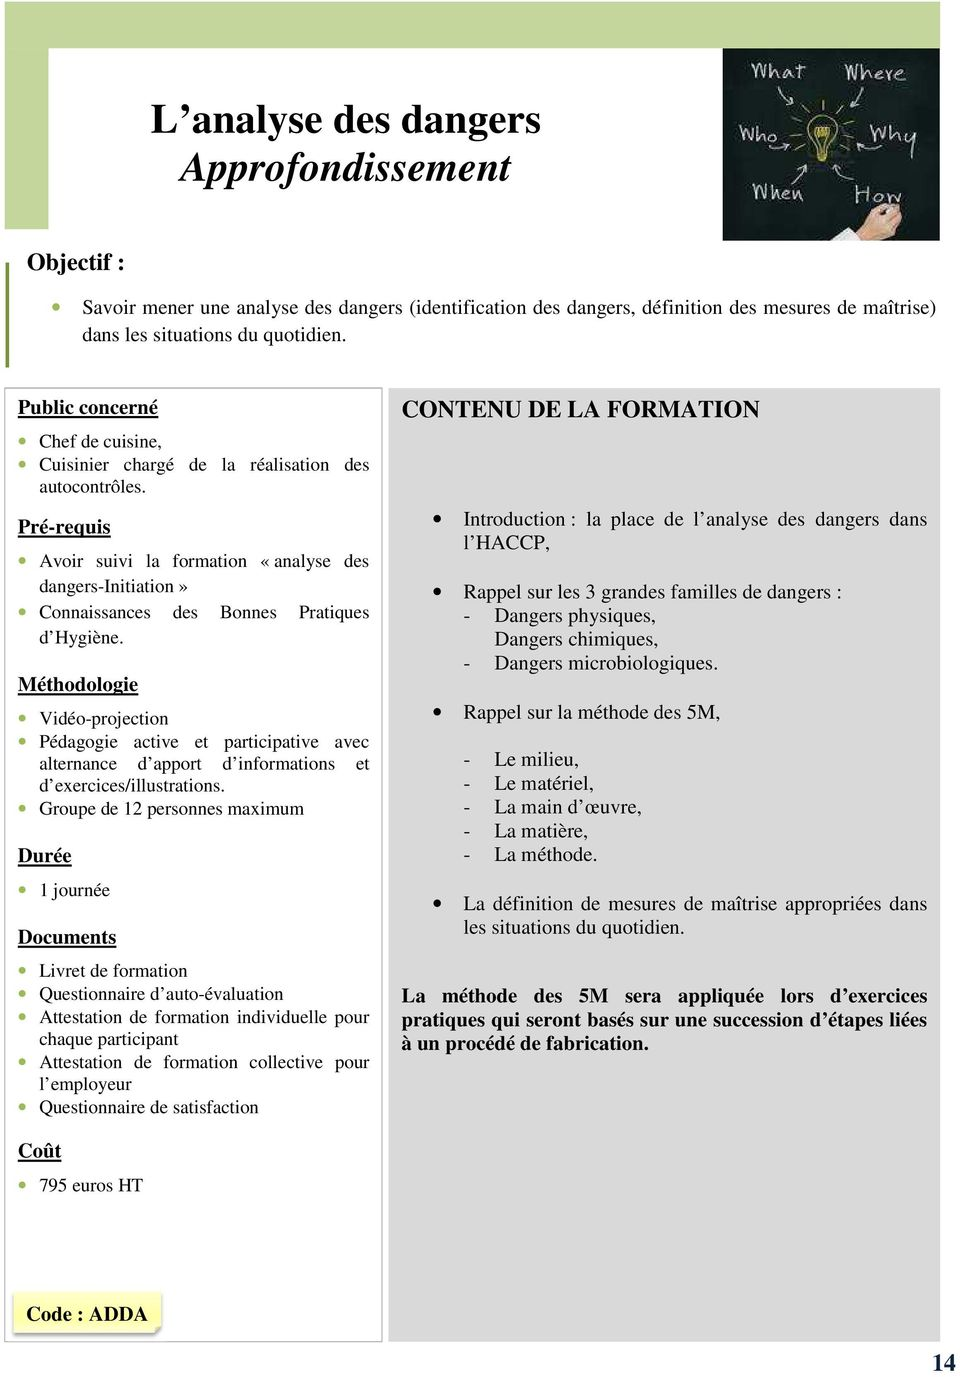 Pédagogie active et participative avec alternance d apport d informations et d exercices/illustrations.